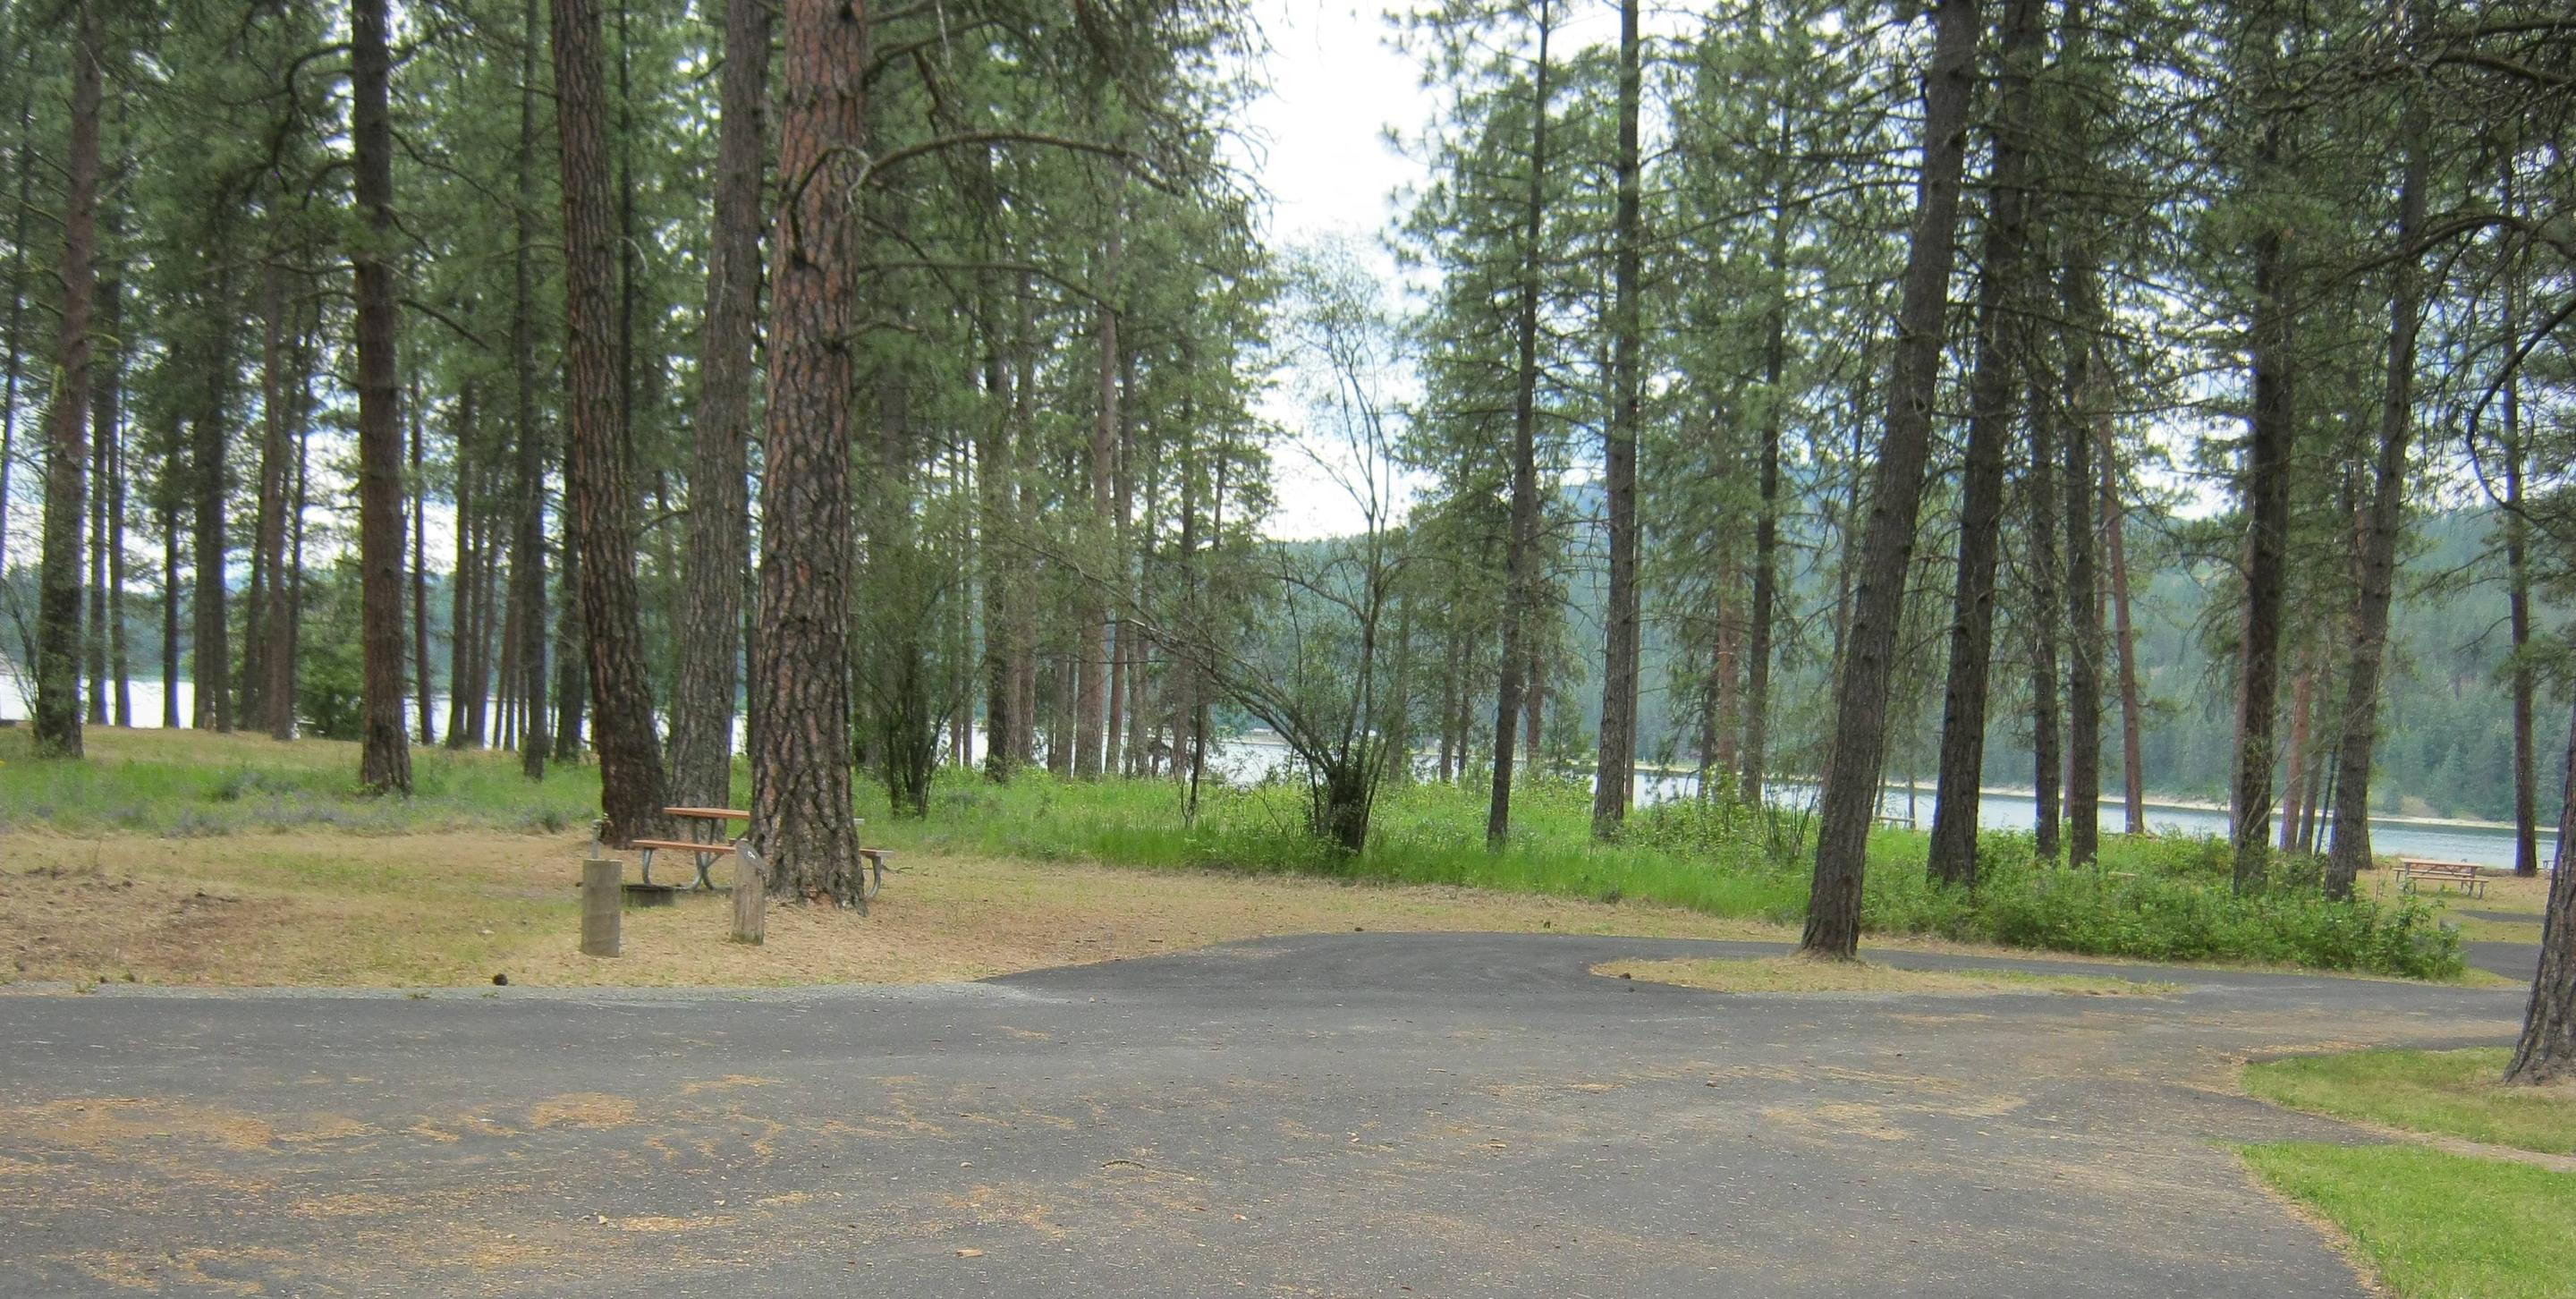 Lake Roosevelt & Pines in back dropPaved Parking Pull Through of site 4